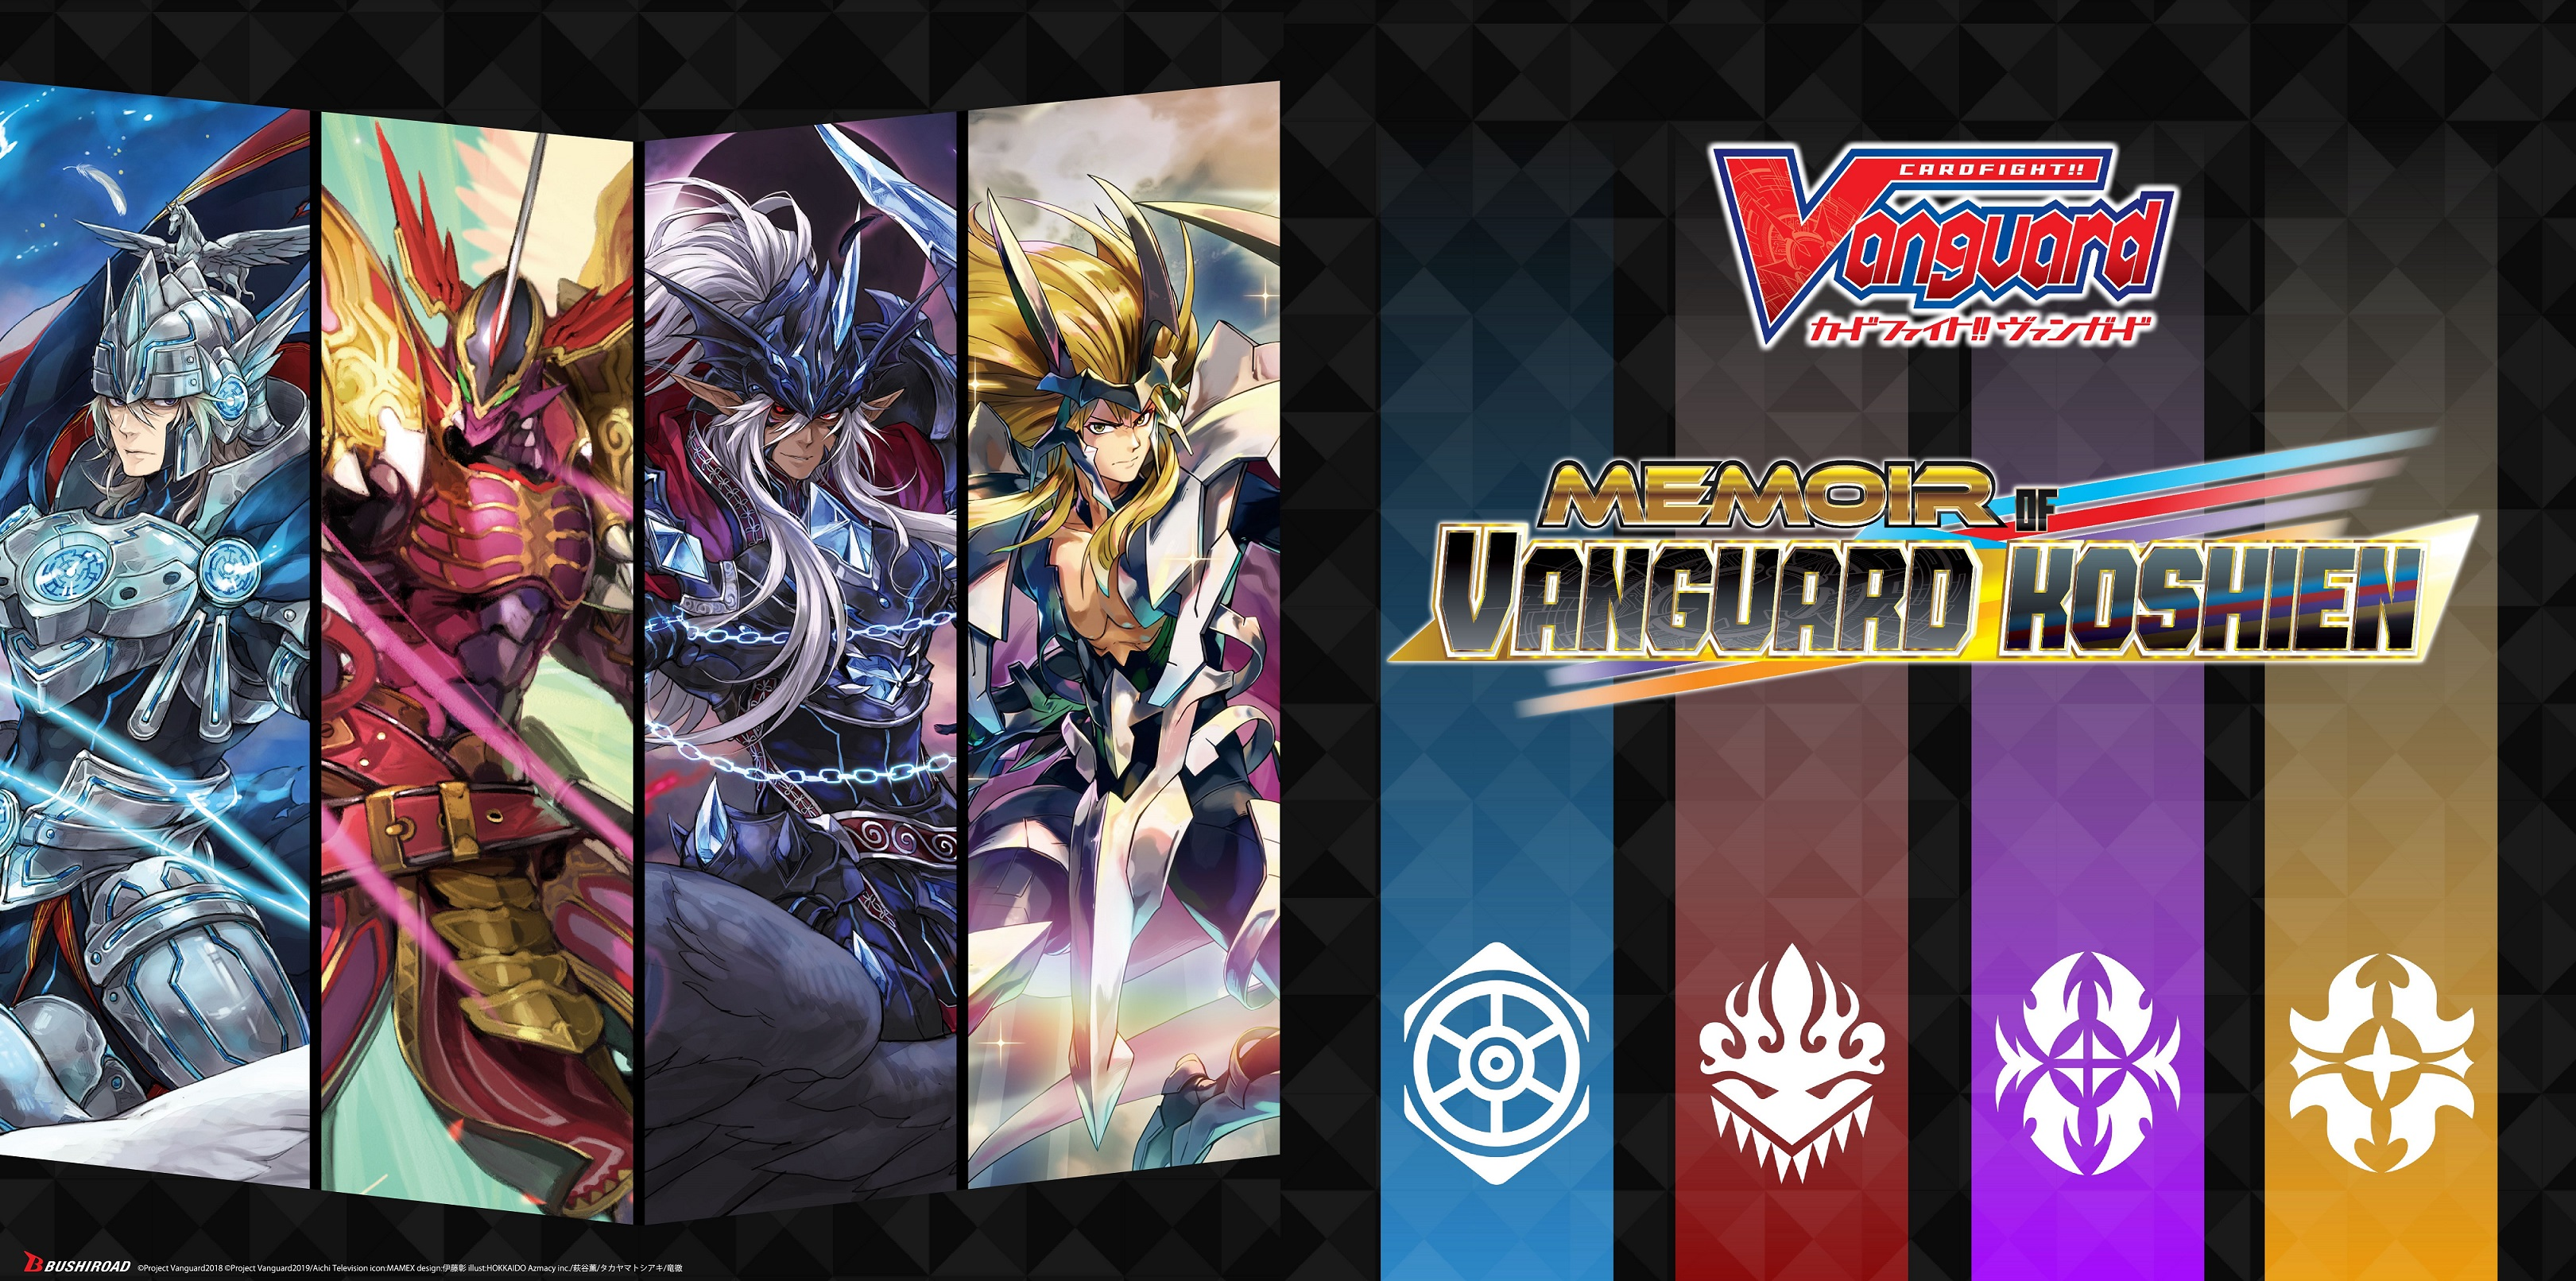 [VGE-V-CS02] Memoir of Vanguard Koshien